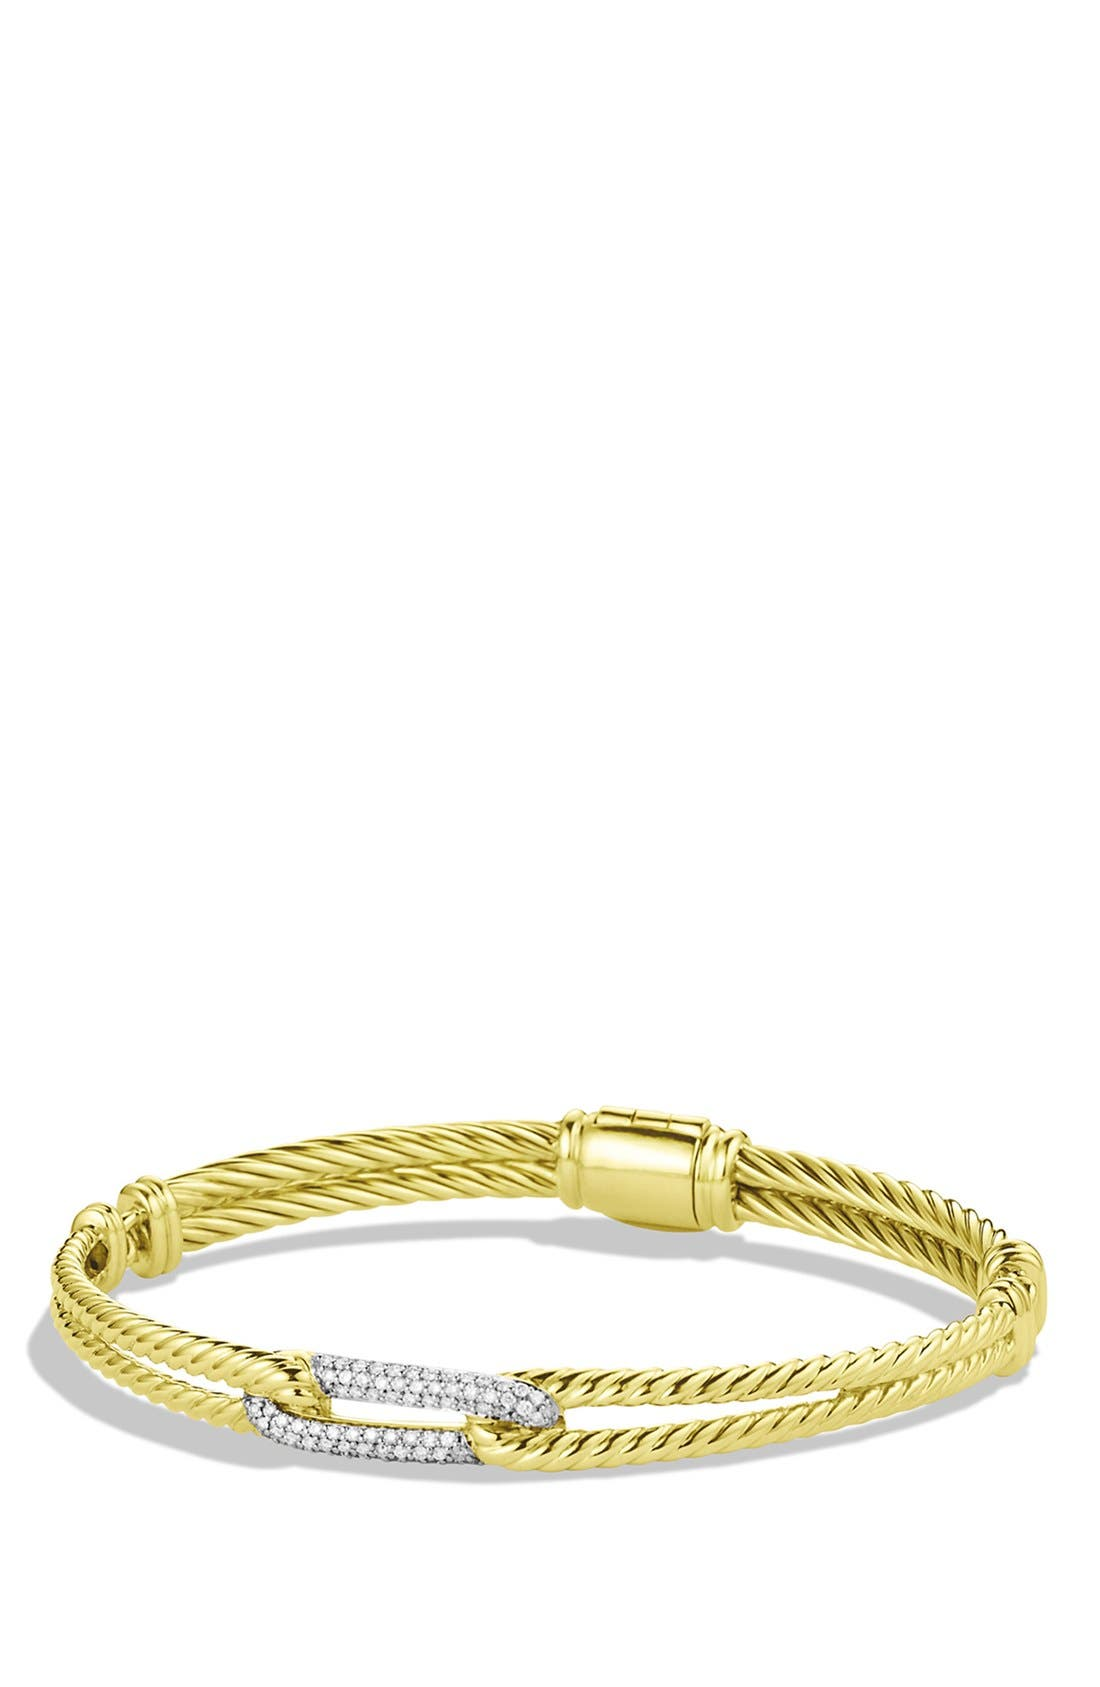 Main Image - David Yurman Petite Pavé 'Labyrinth' Mini Single Loop Bracelet with Diamonds in Gold